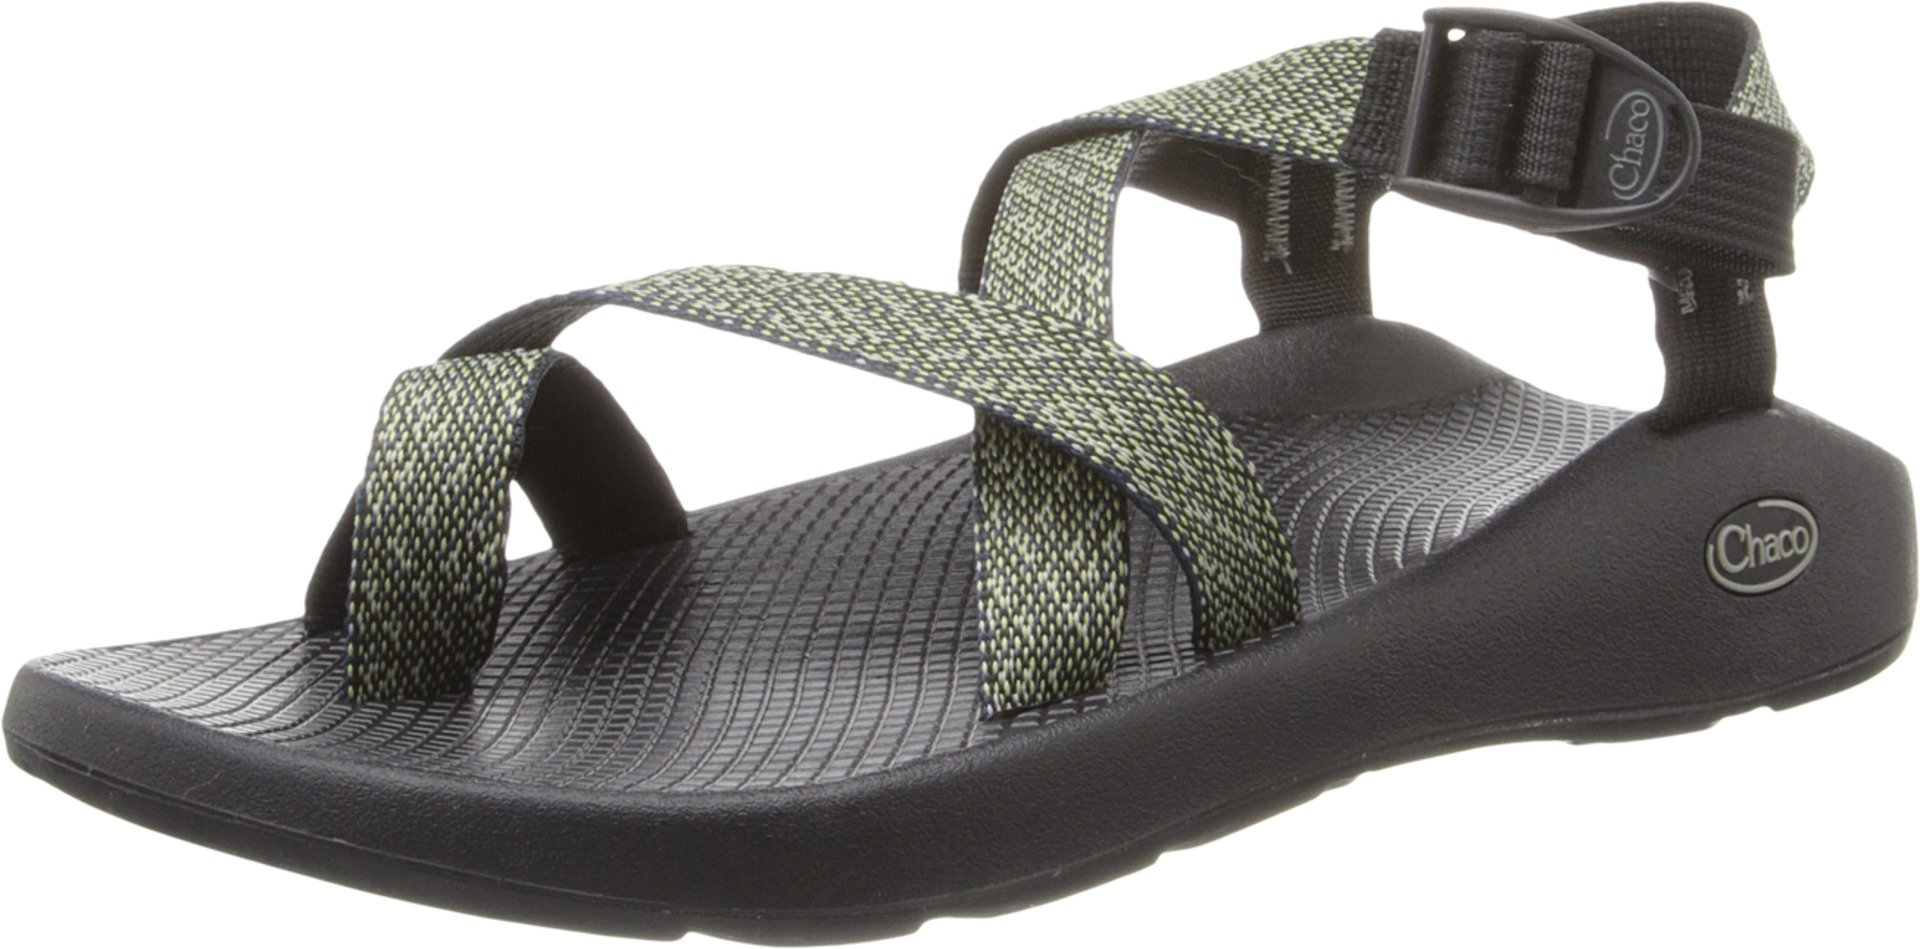 Chaco Men's Z/2 Yampa Sandal,Dither,14 M US